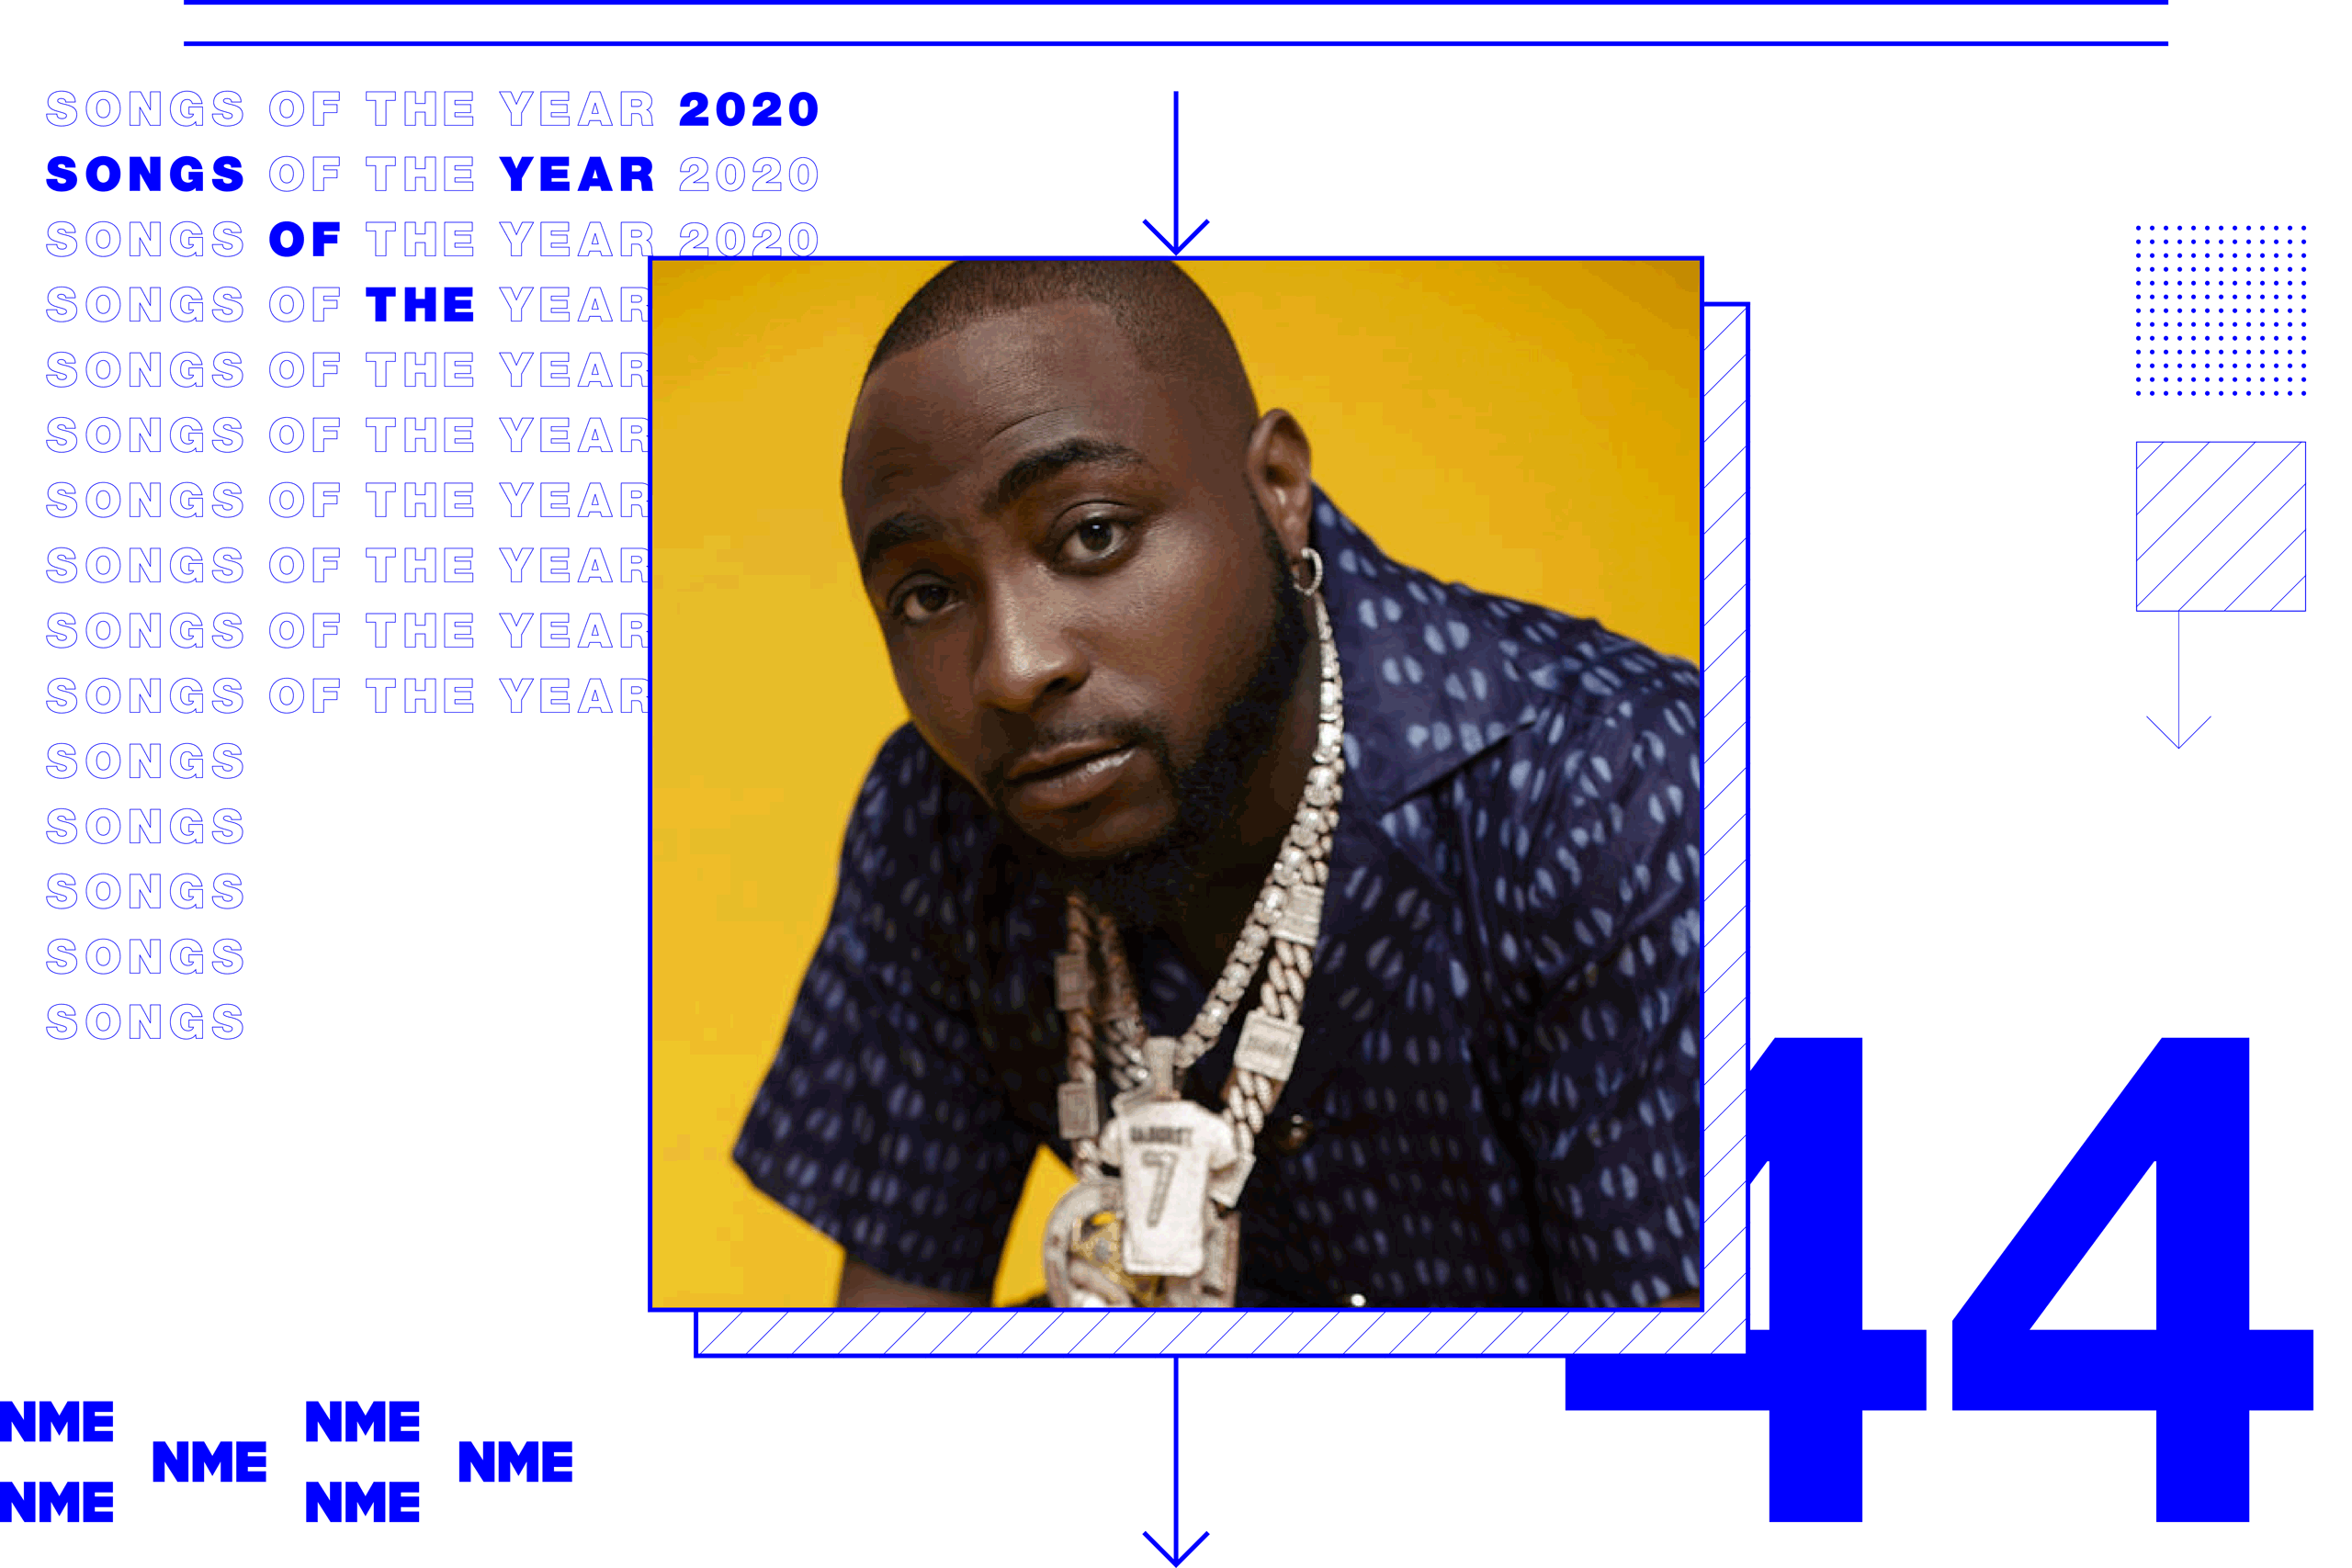 nme songs of the year Davido – 'FEM 5'